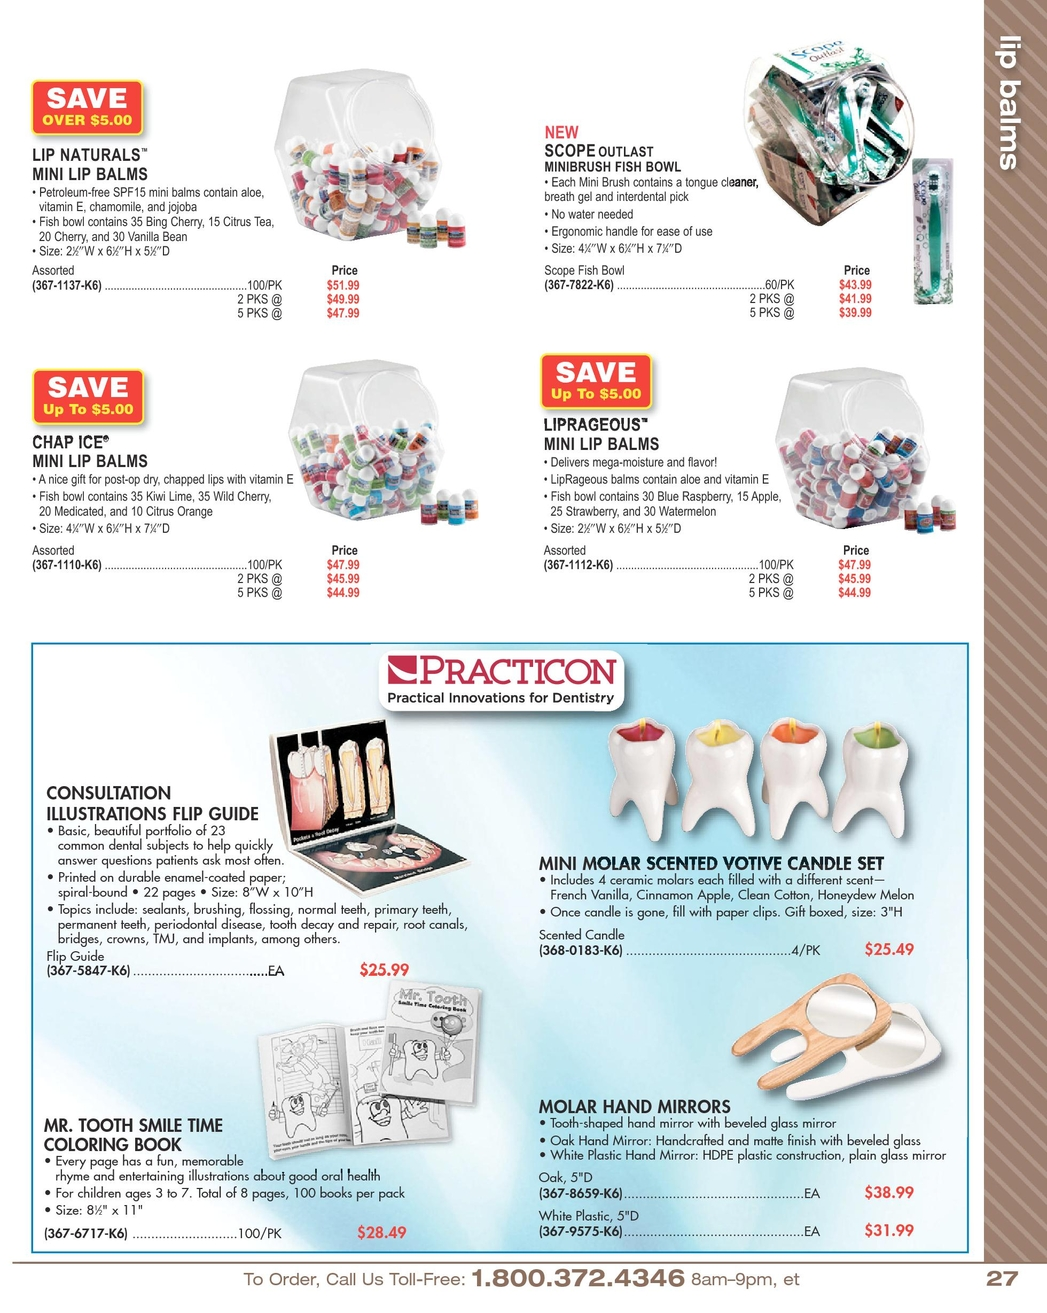 Dental Front Office Source - September 3-September 28, 2012